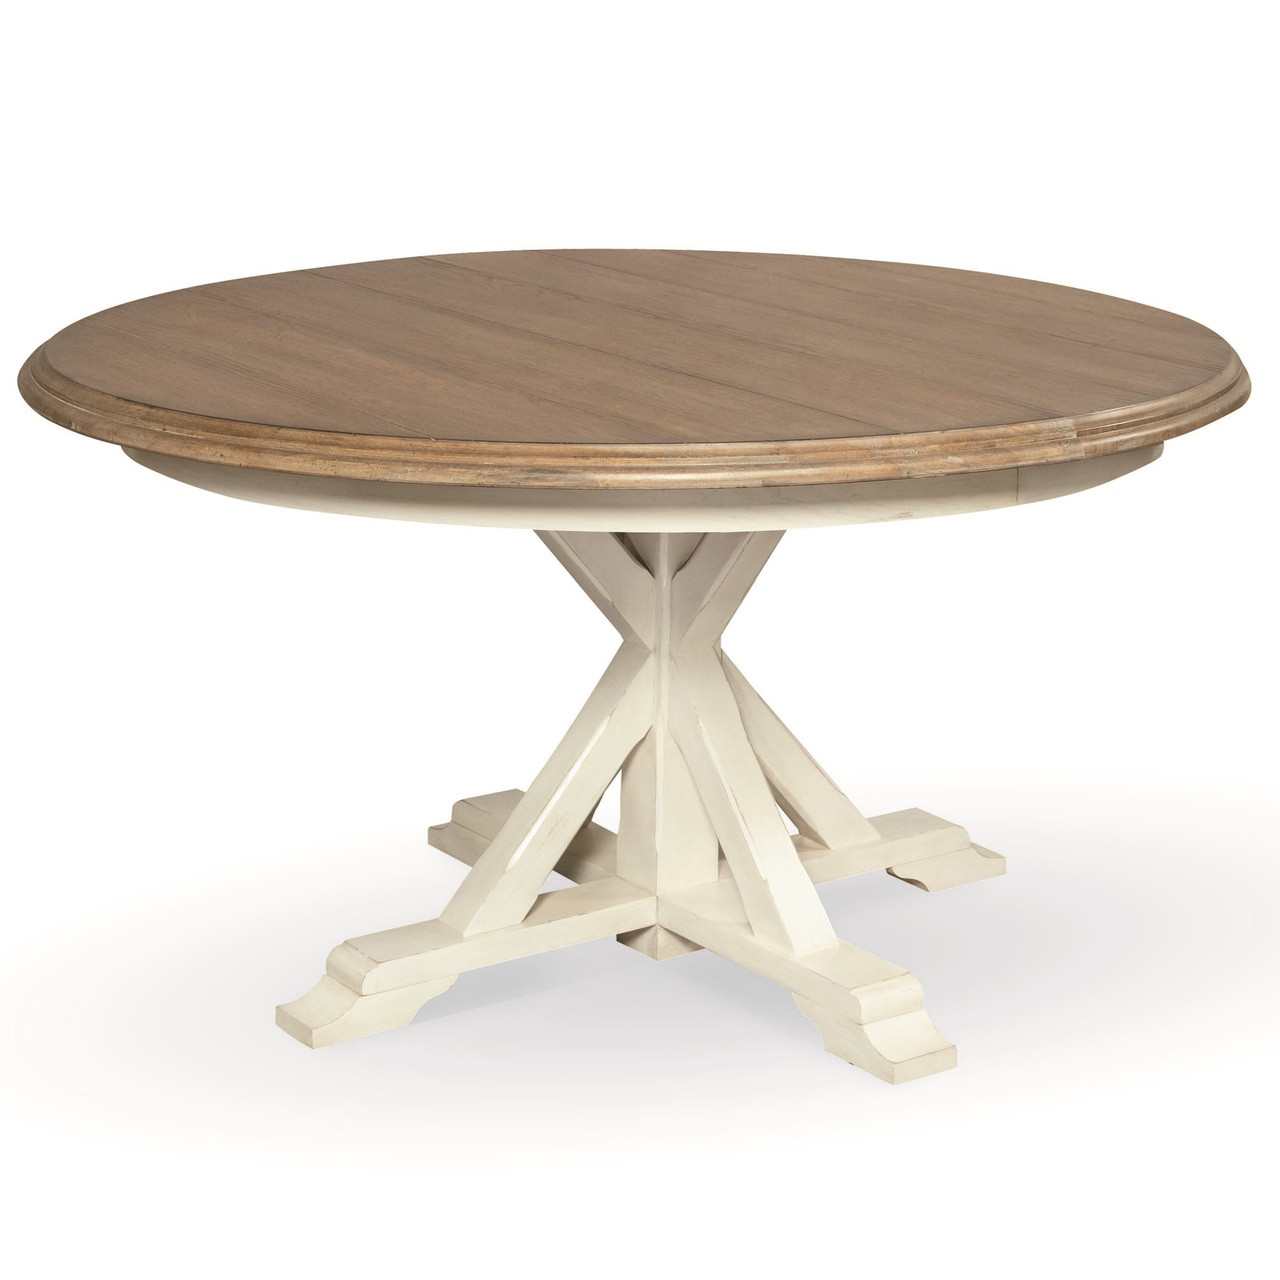 Coastal Beach White Oak round extension dining table. Coastal Beach White Oak Round Expandable Dining Table 54    Zin Home